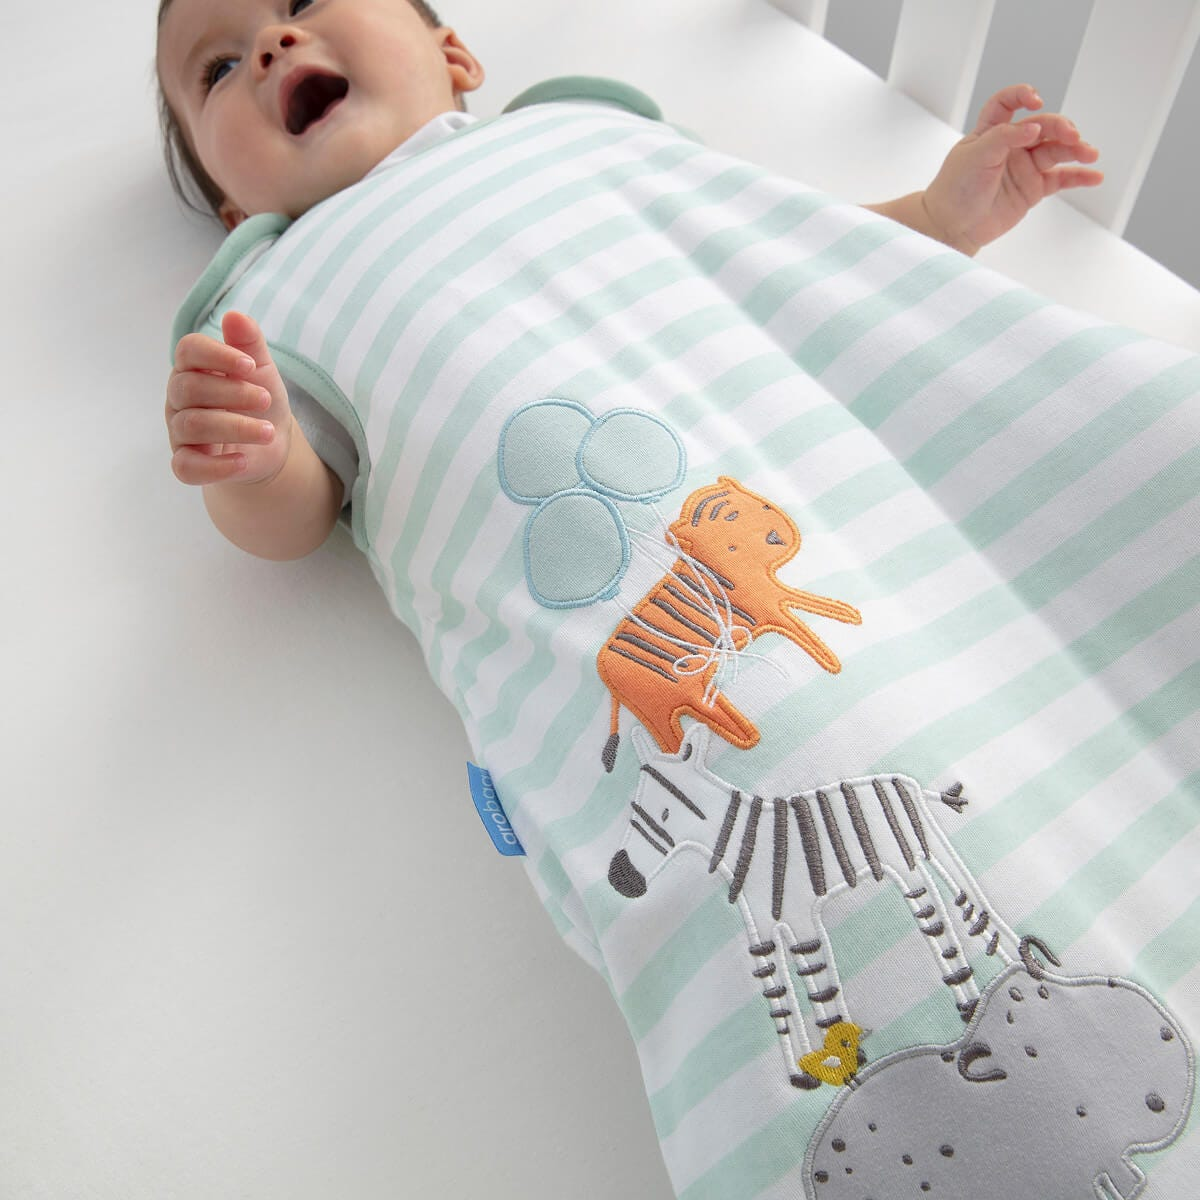 jungle-stack-grobag-close-up-of-baby-lying-in-cot